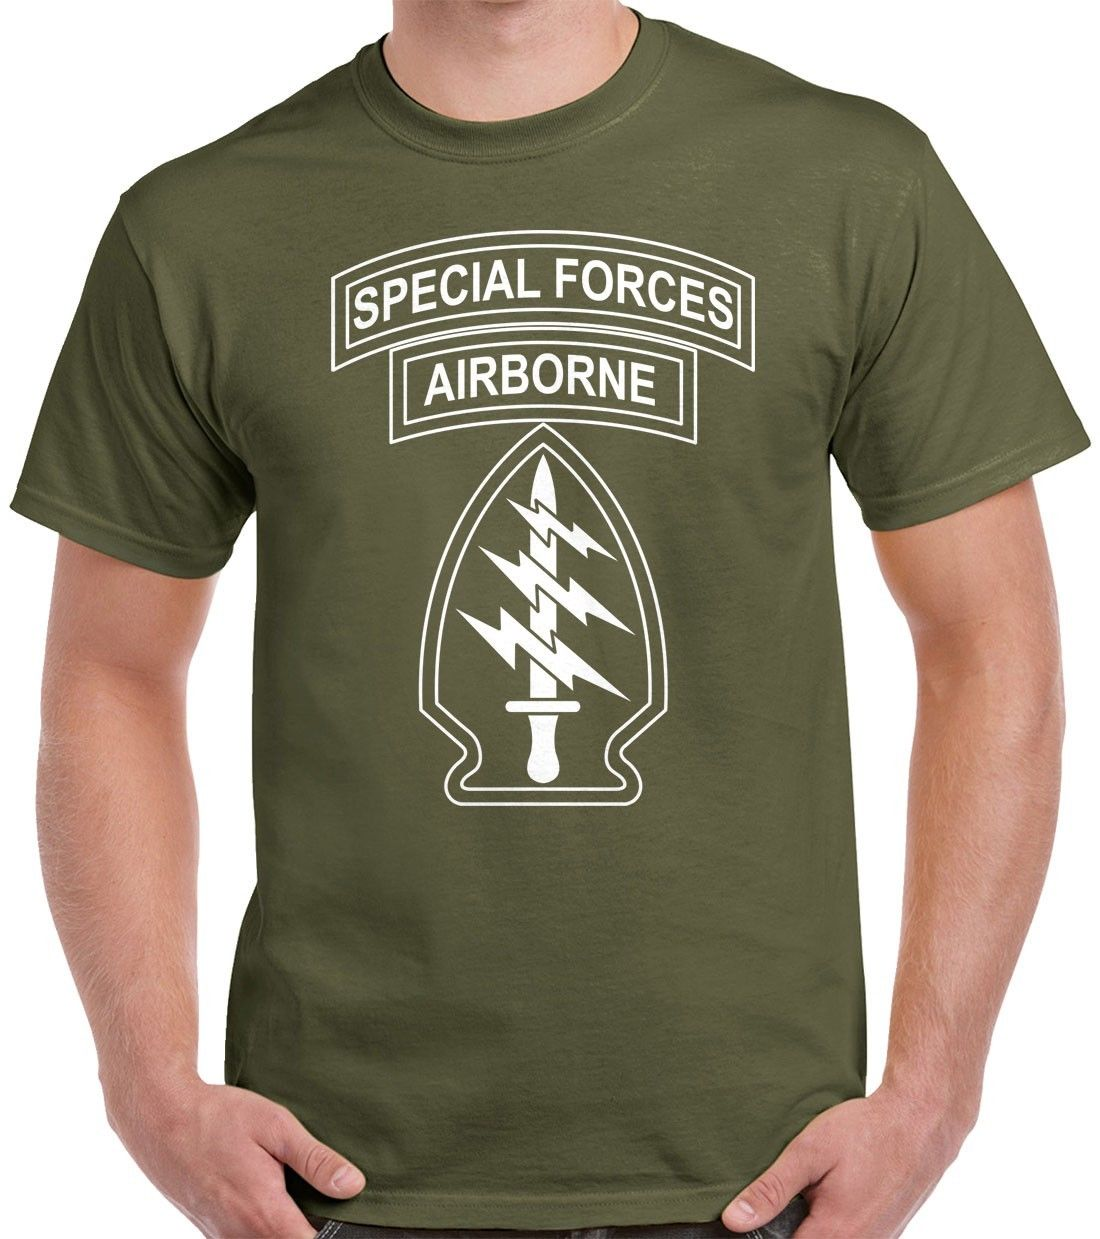 Special Forces T Shirt Beret Patches <font><b>SF</b></font> Funny Short Sleeve <font><b>Tshirts</b></font> Summer Hip Hop Casual Cotton Tops Tees image